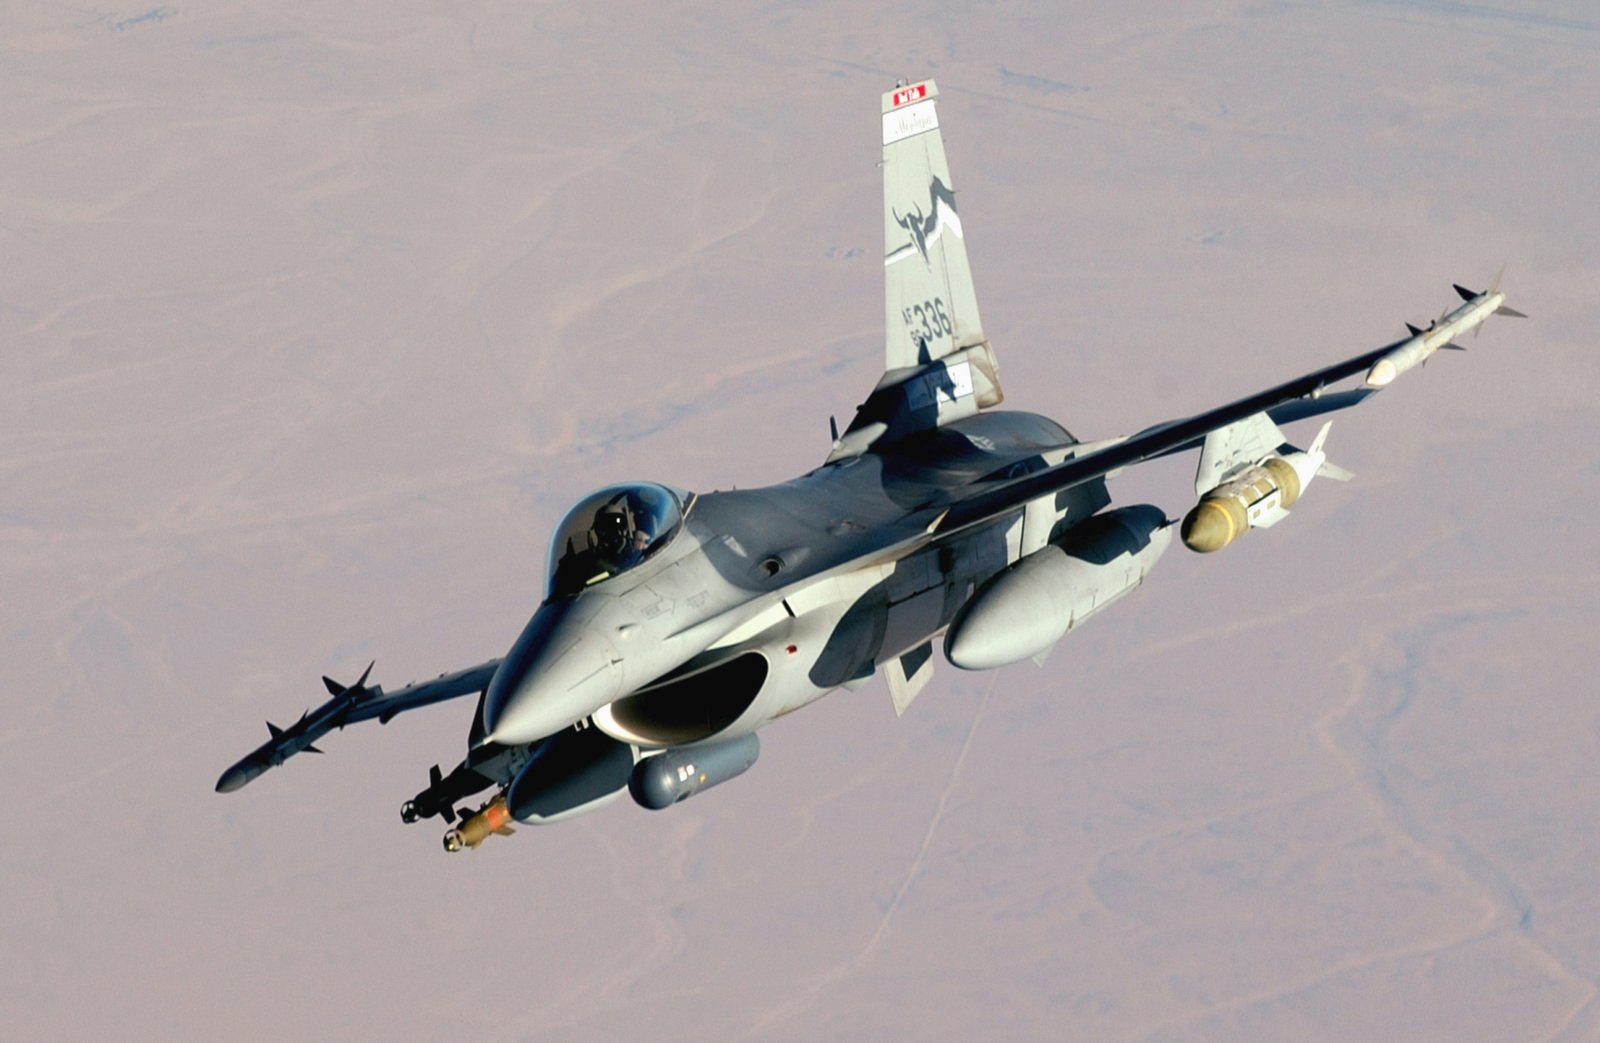 a us air force usaf f 16 fighting falcon fighter aircraft is in flight during 5d5f8d 1600 20 Things You Probably Didn't Know About The Original Battlestar Galactica